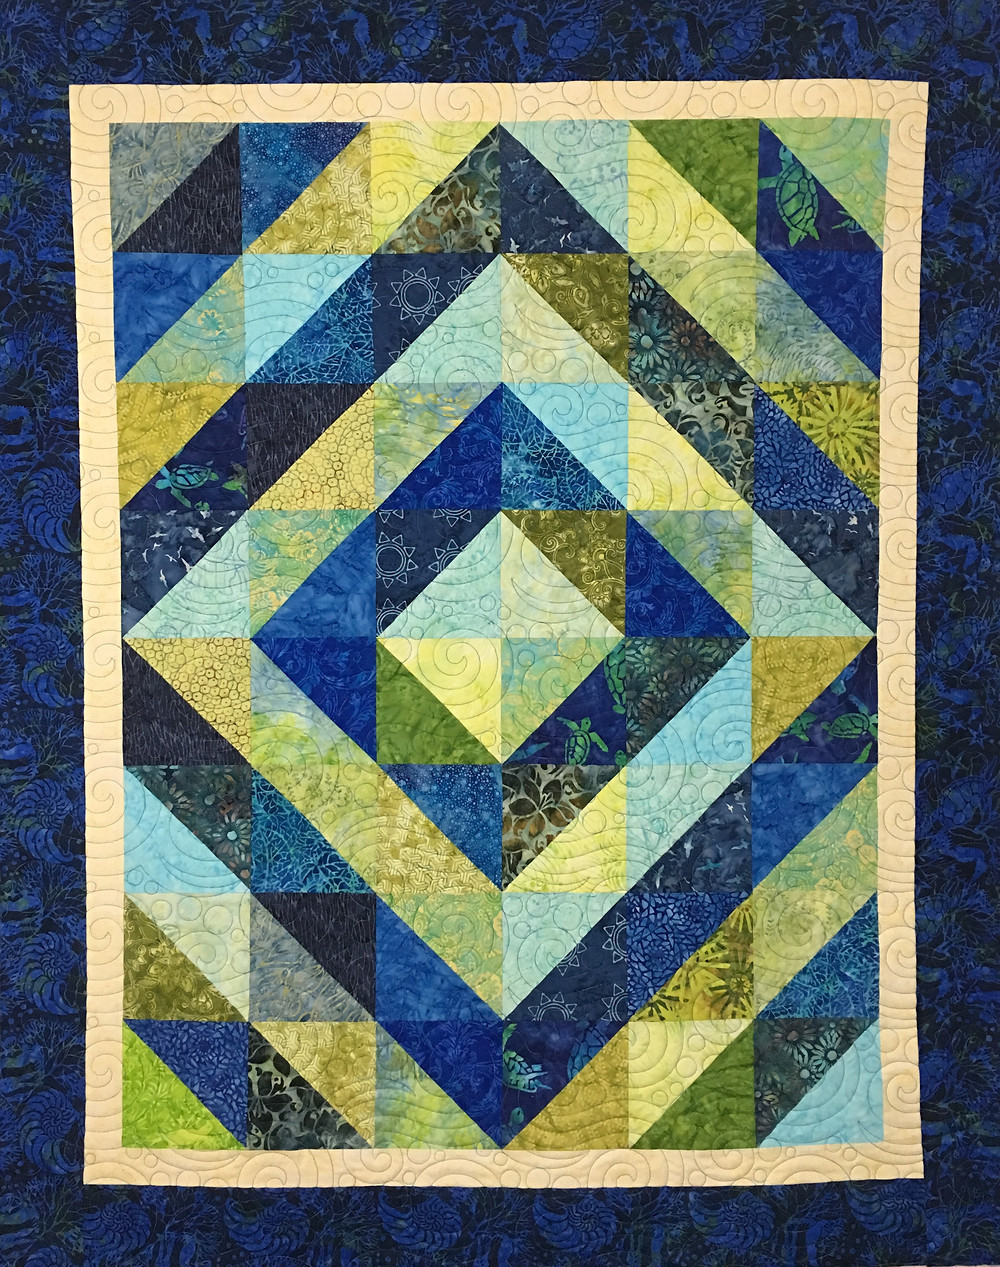 Square in a Square Quilt by Cindy Manning